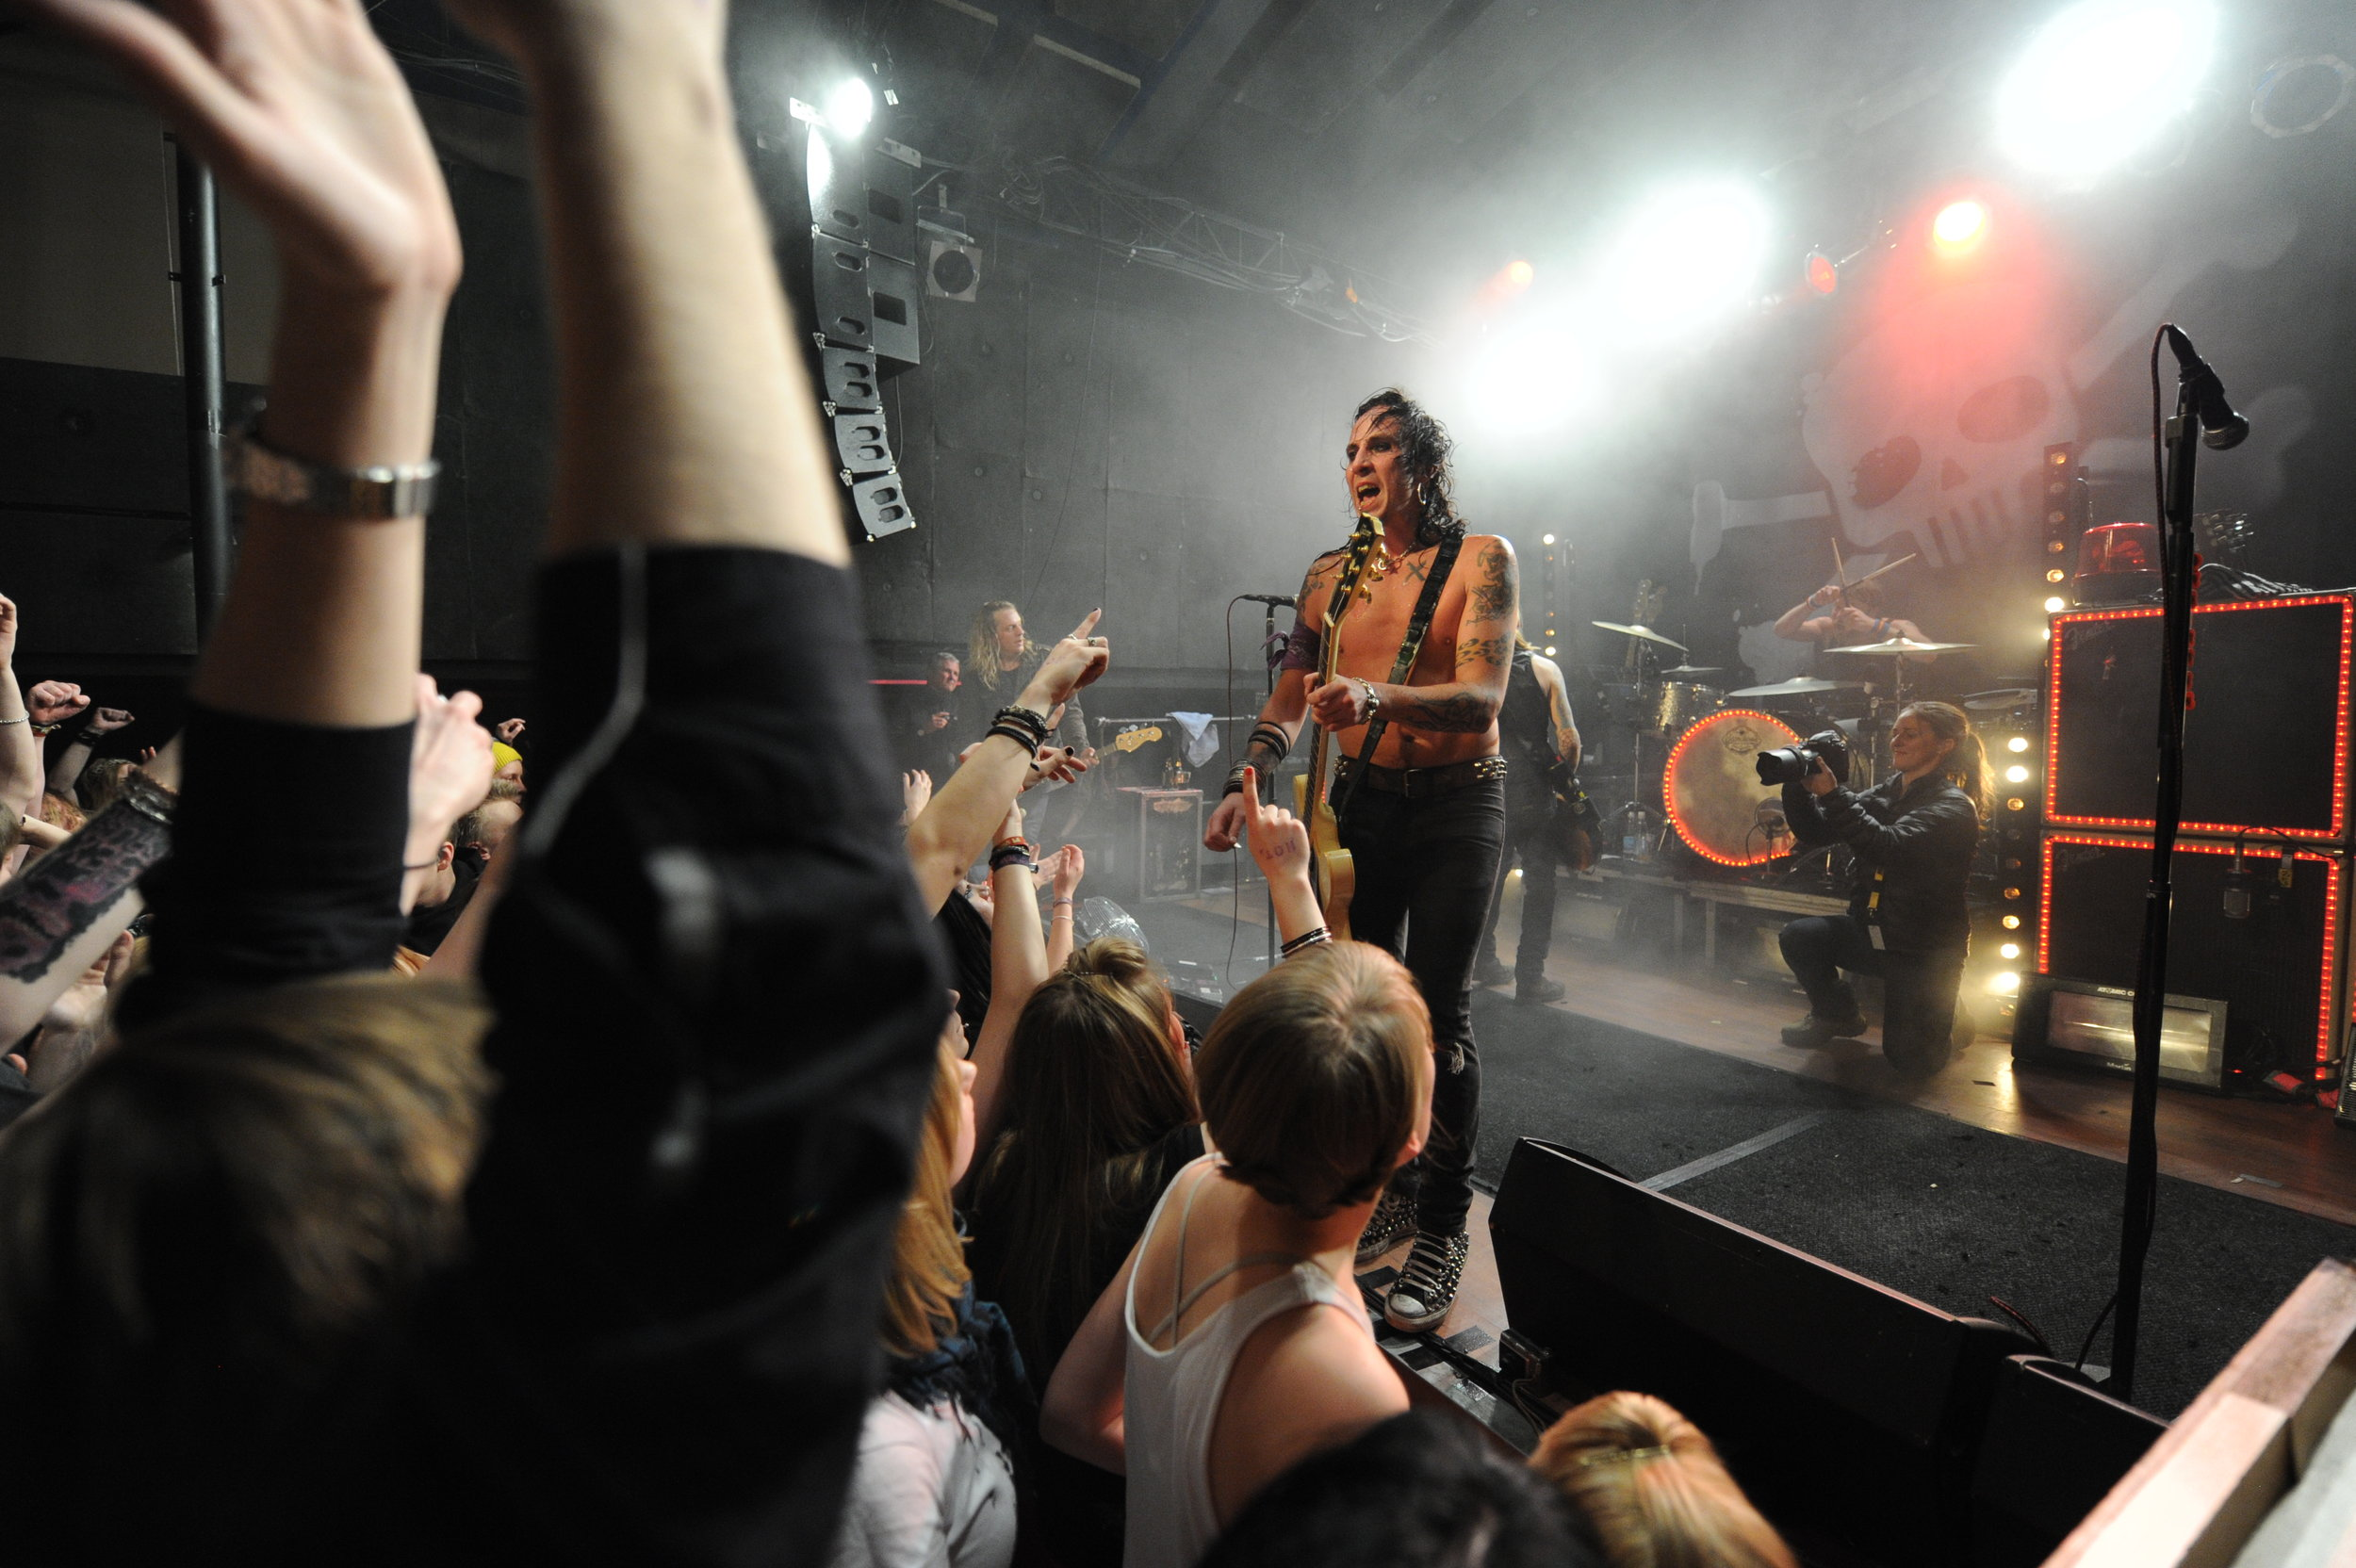 Onstage with the Backyard Babies in Turku, Finland.